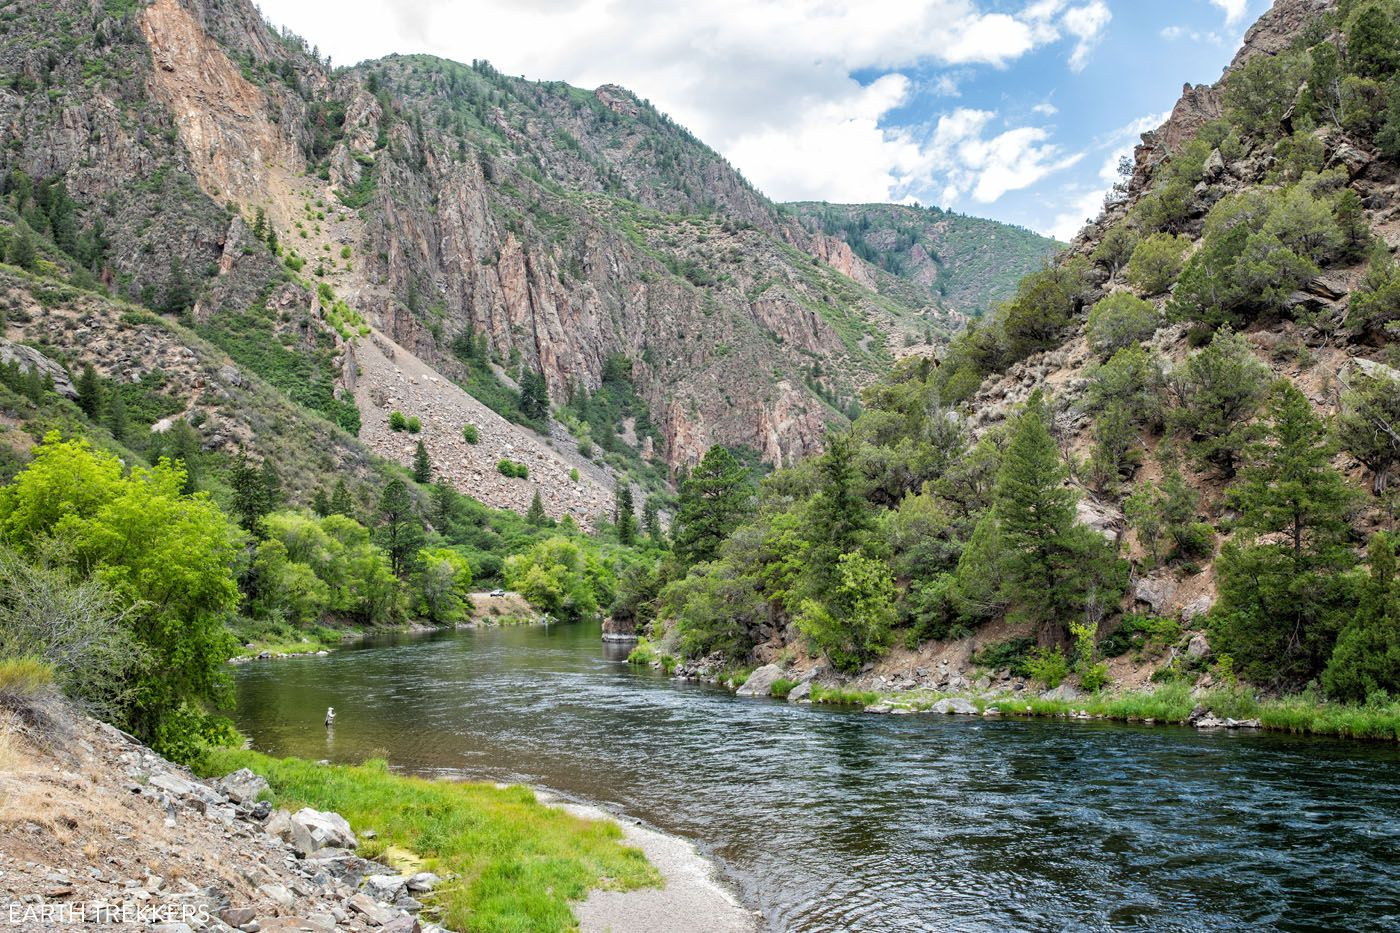 Gunnison River how to visit the Black Canyon of the Gunnison